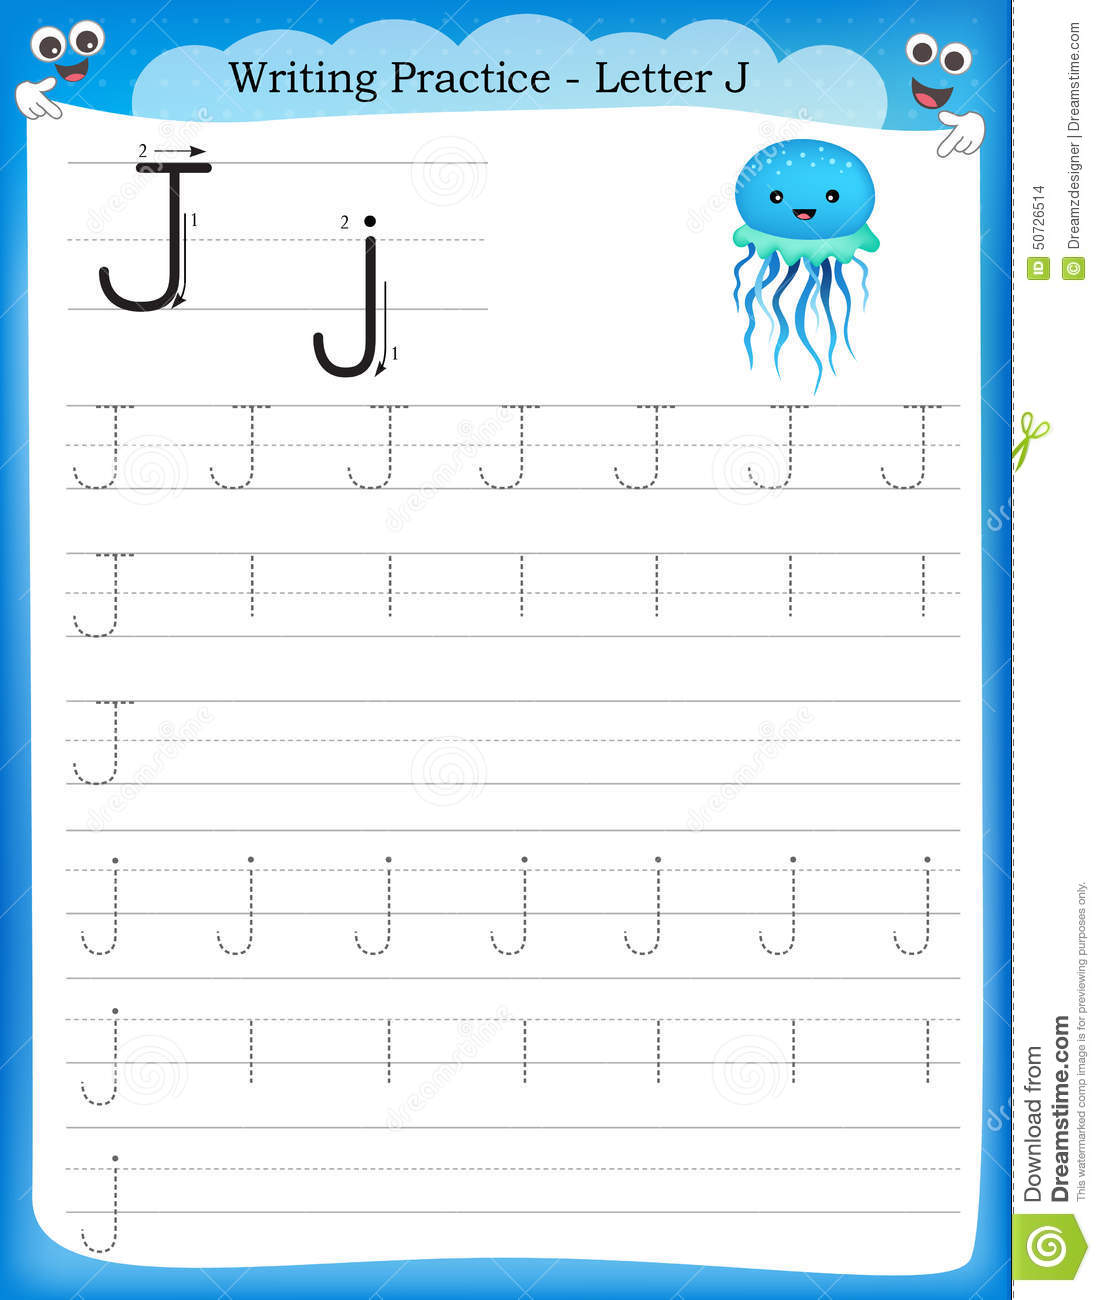 Writing practice letter J printable worksheet for preschool ...